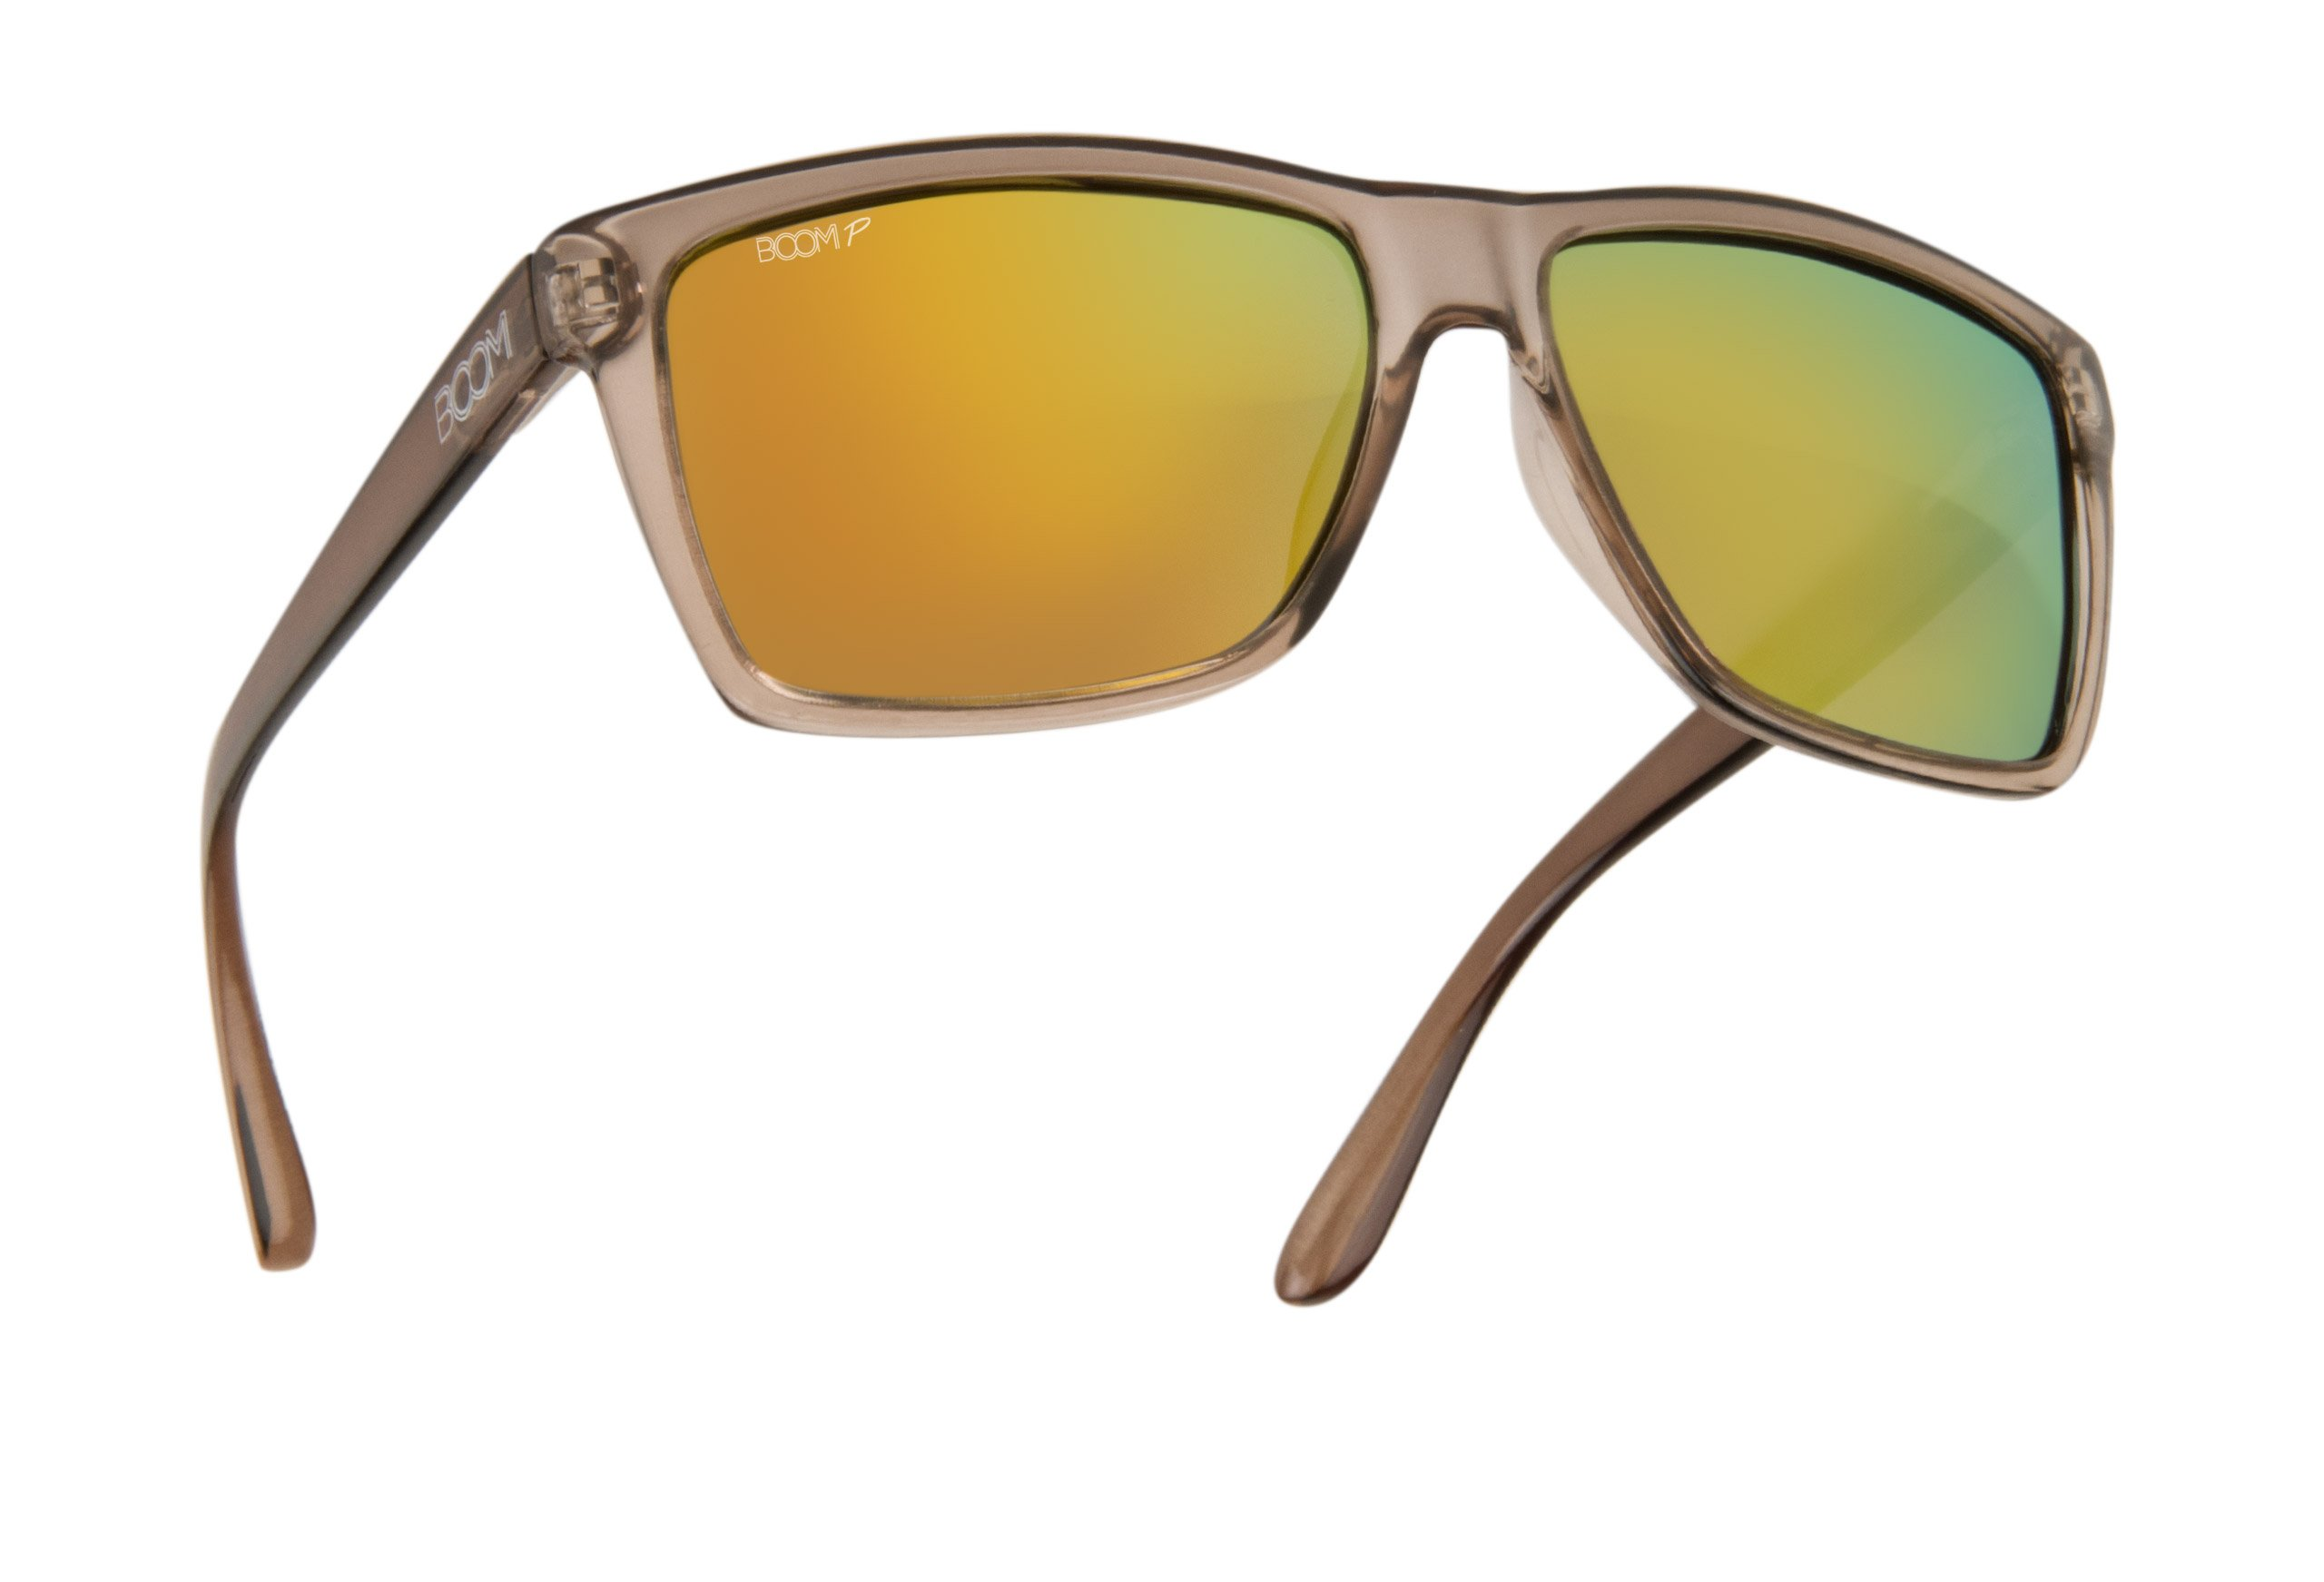 BOOM Surge Polarized Sunglasses by Dimensional Optics - DIRTBAG by BOOM